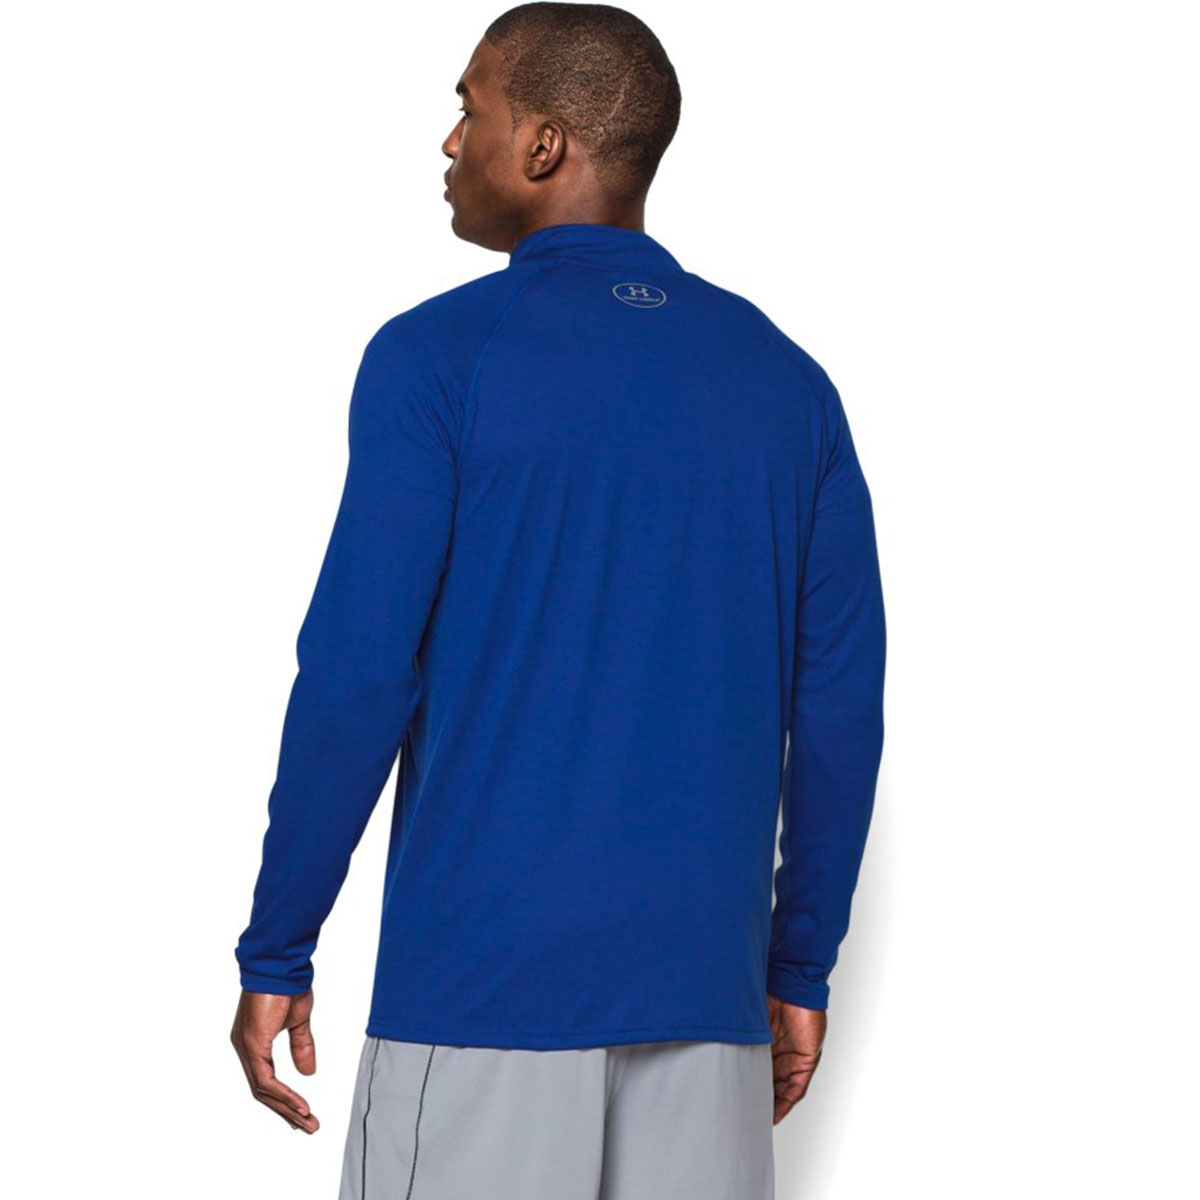 Under-Armour-Mens-UA-Tech-1-4-Zip-Long-Sleeve-Top-Workout-Layer-27-OFF-RRP thumbnail 76